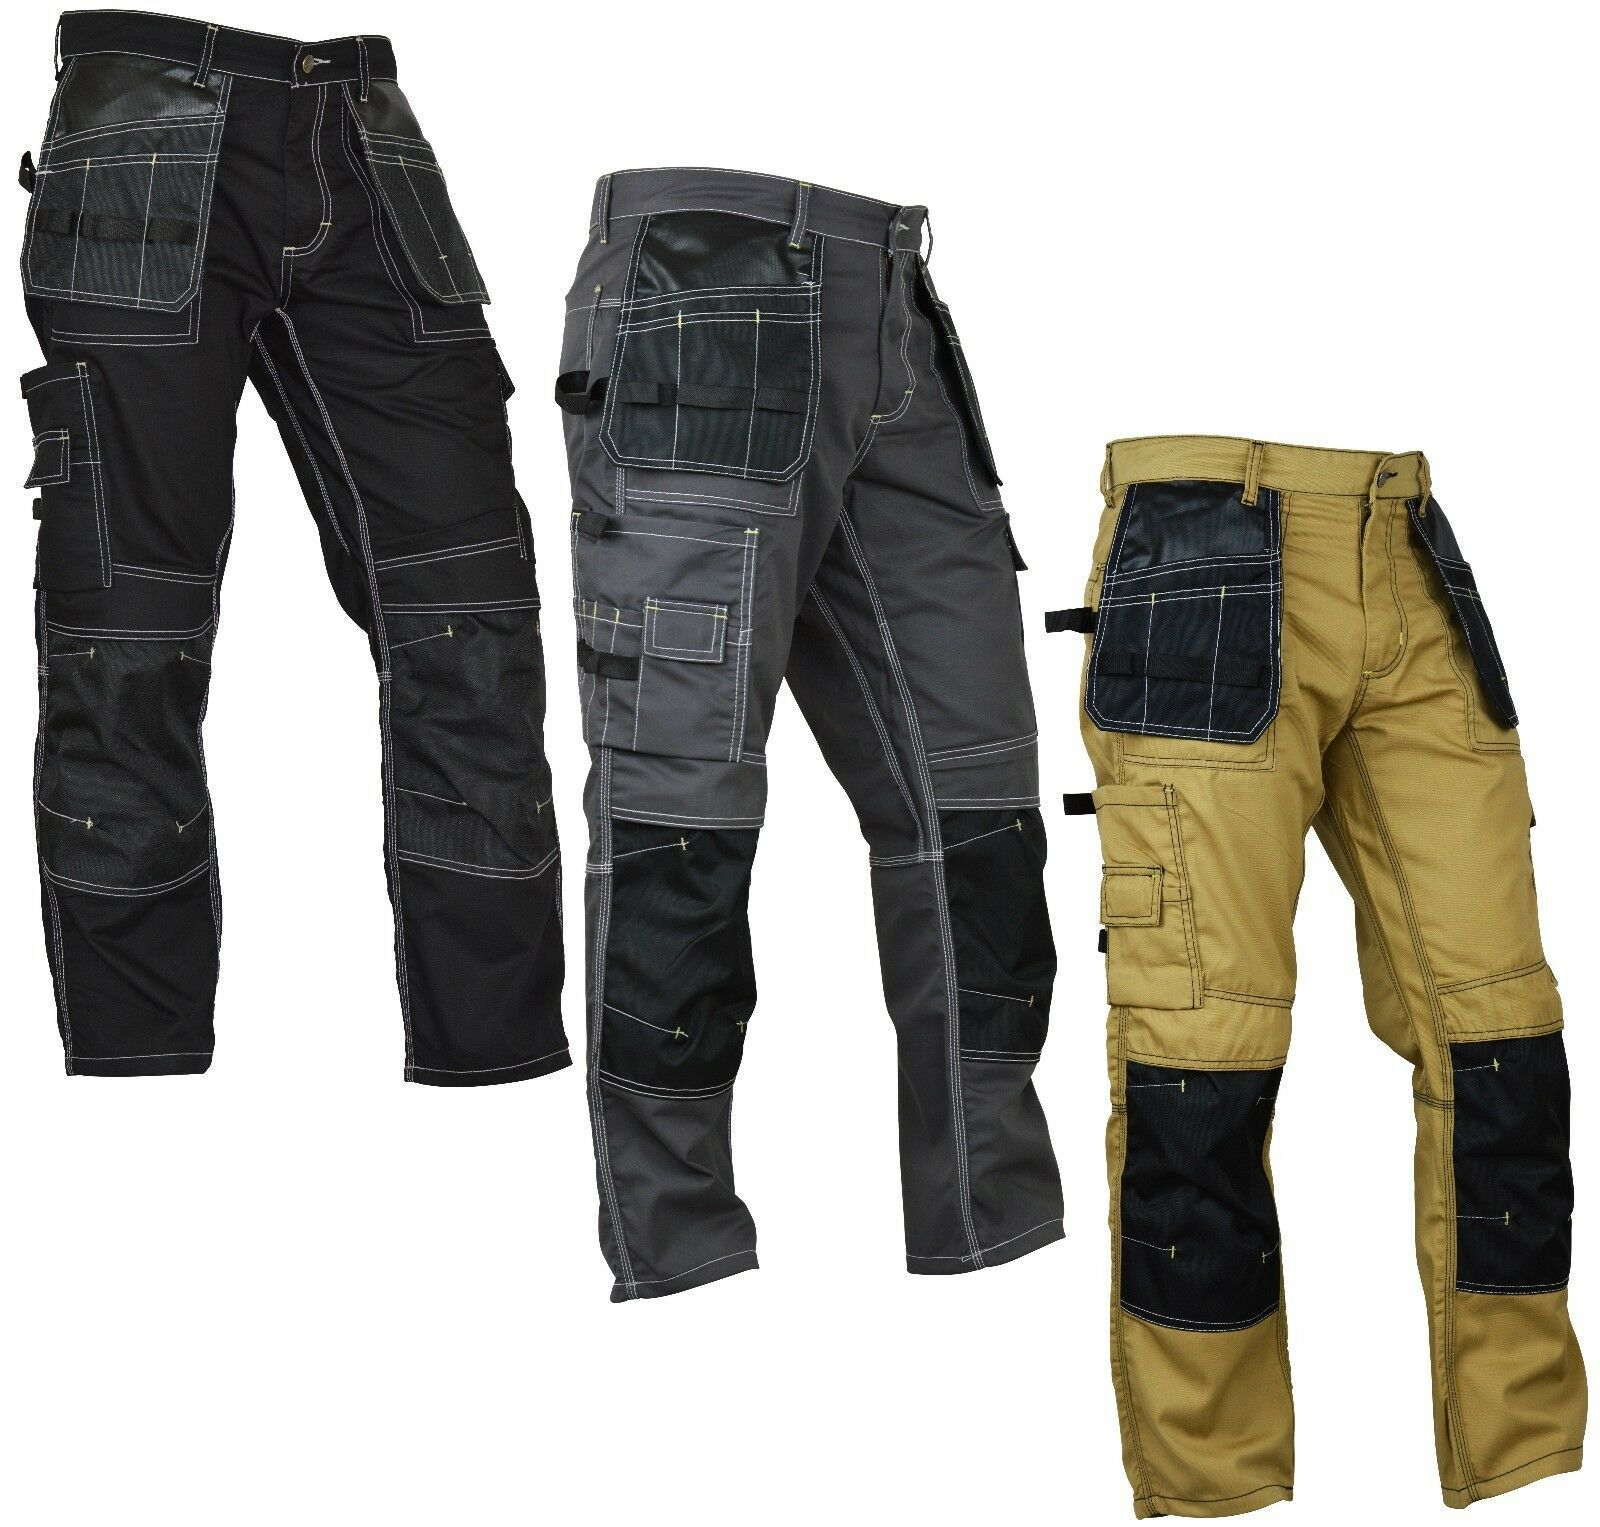 Work Combat Trouser Tuff Cargo Multi Knee Pad Pocket Pro Pants Sports Workwear